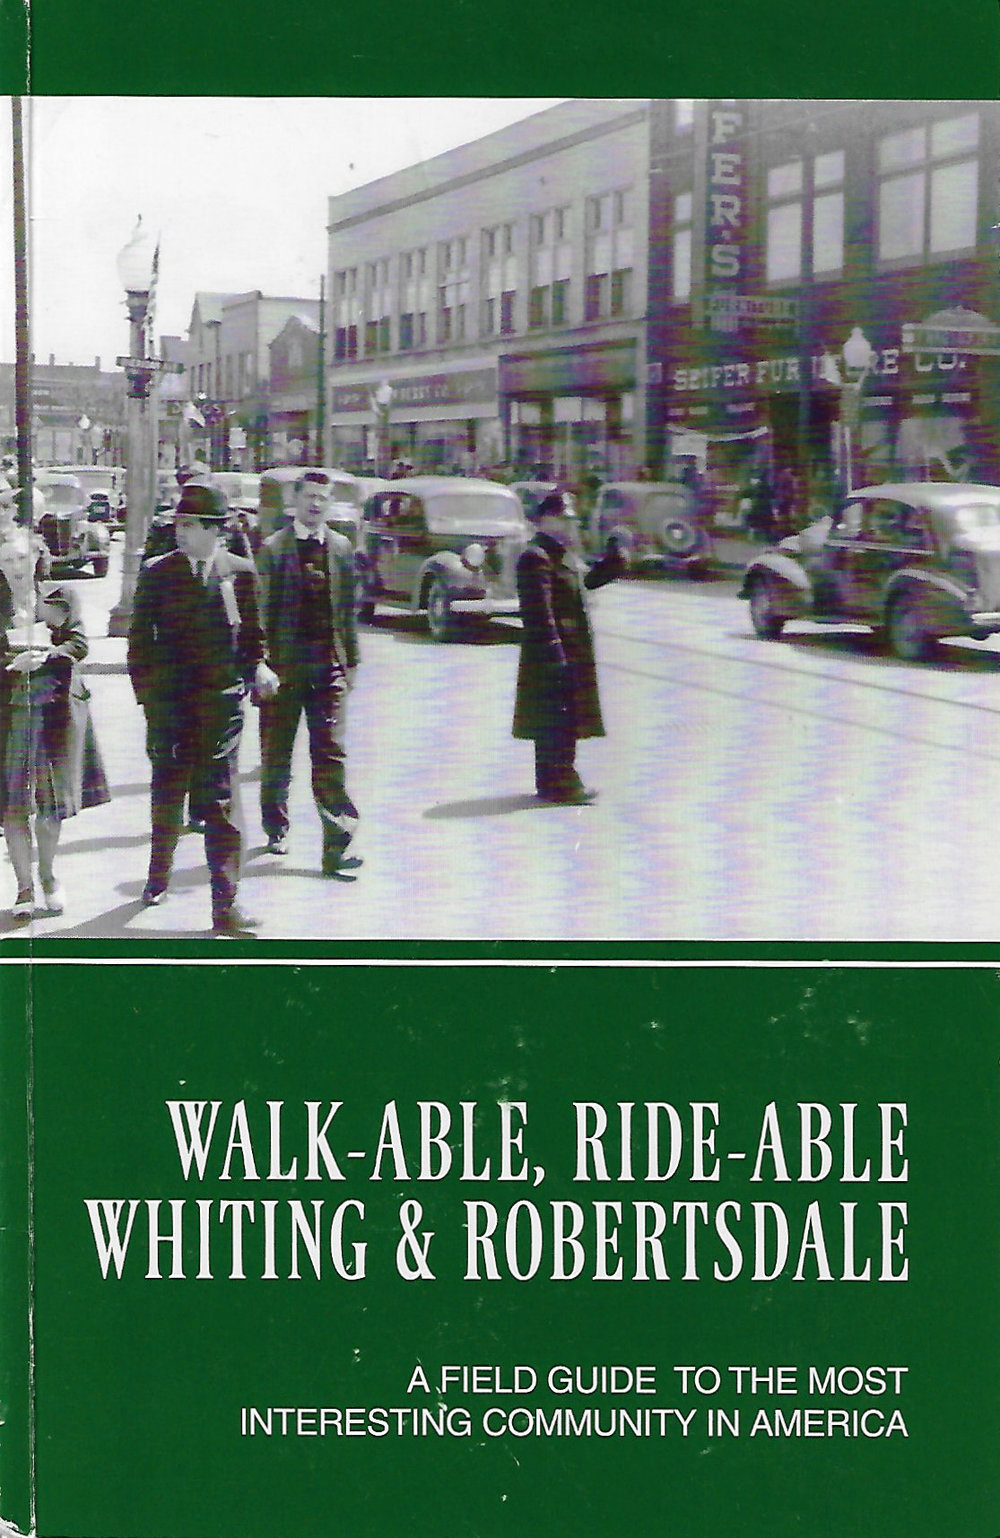 Walk-Able, Read-Able Whiting & Robertsdale  By David M. Dabertin (2011)